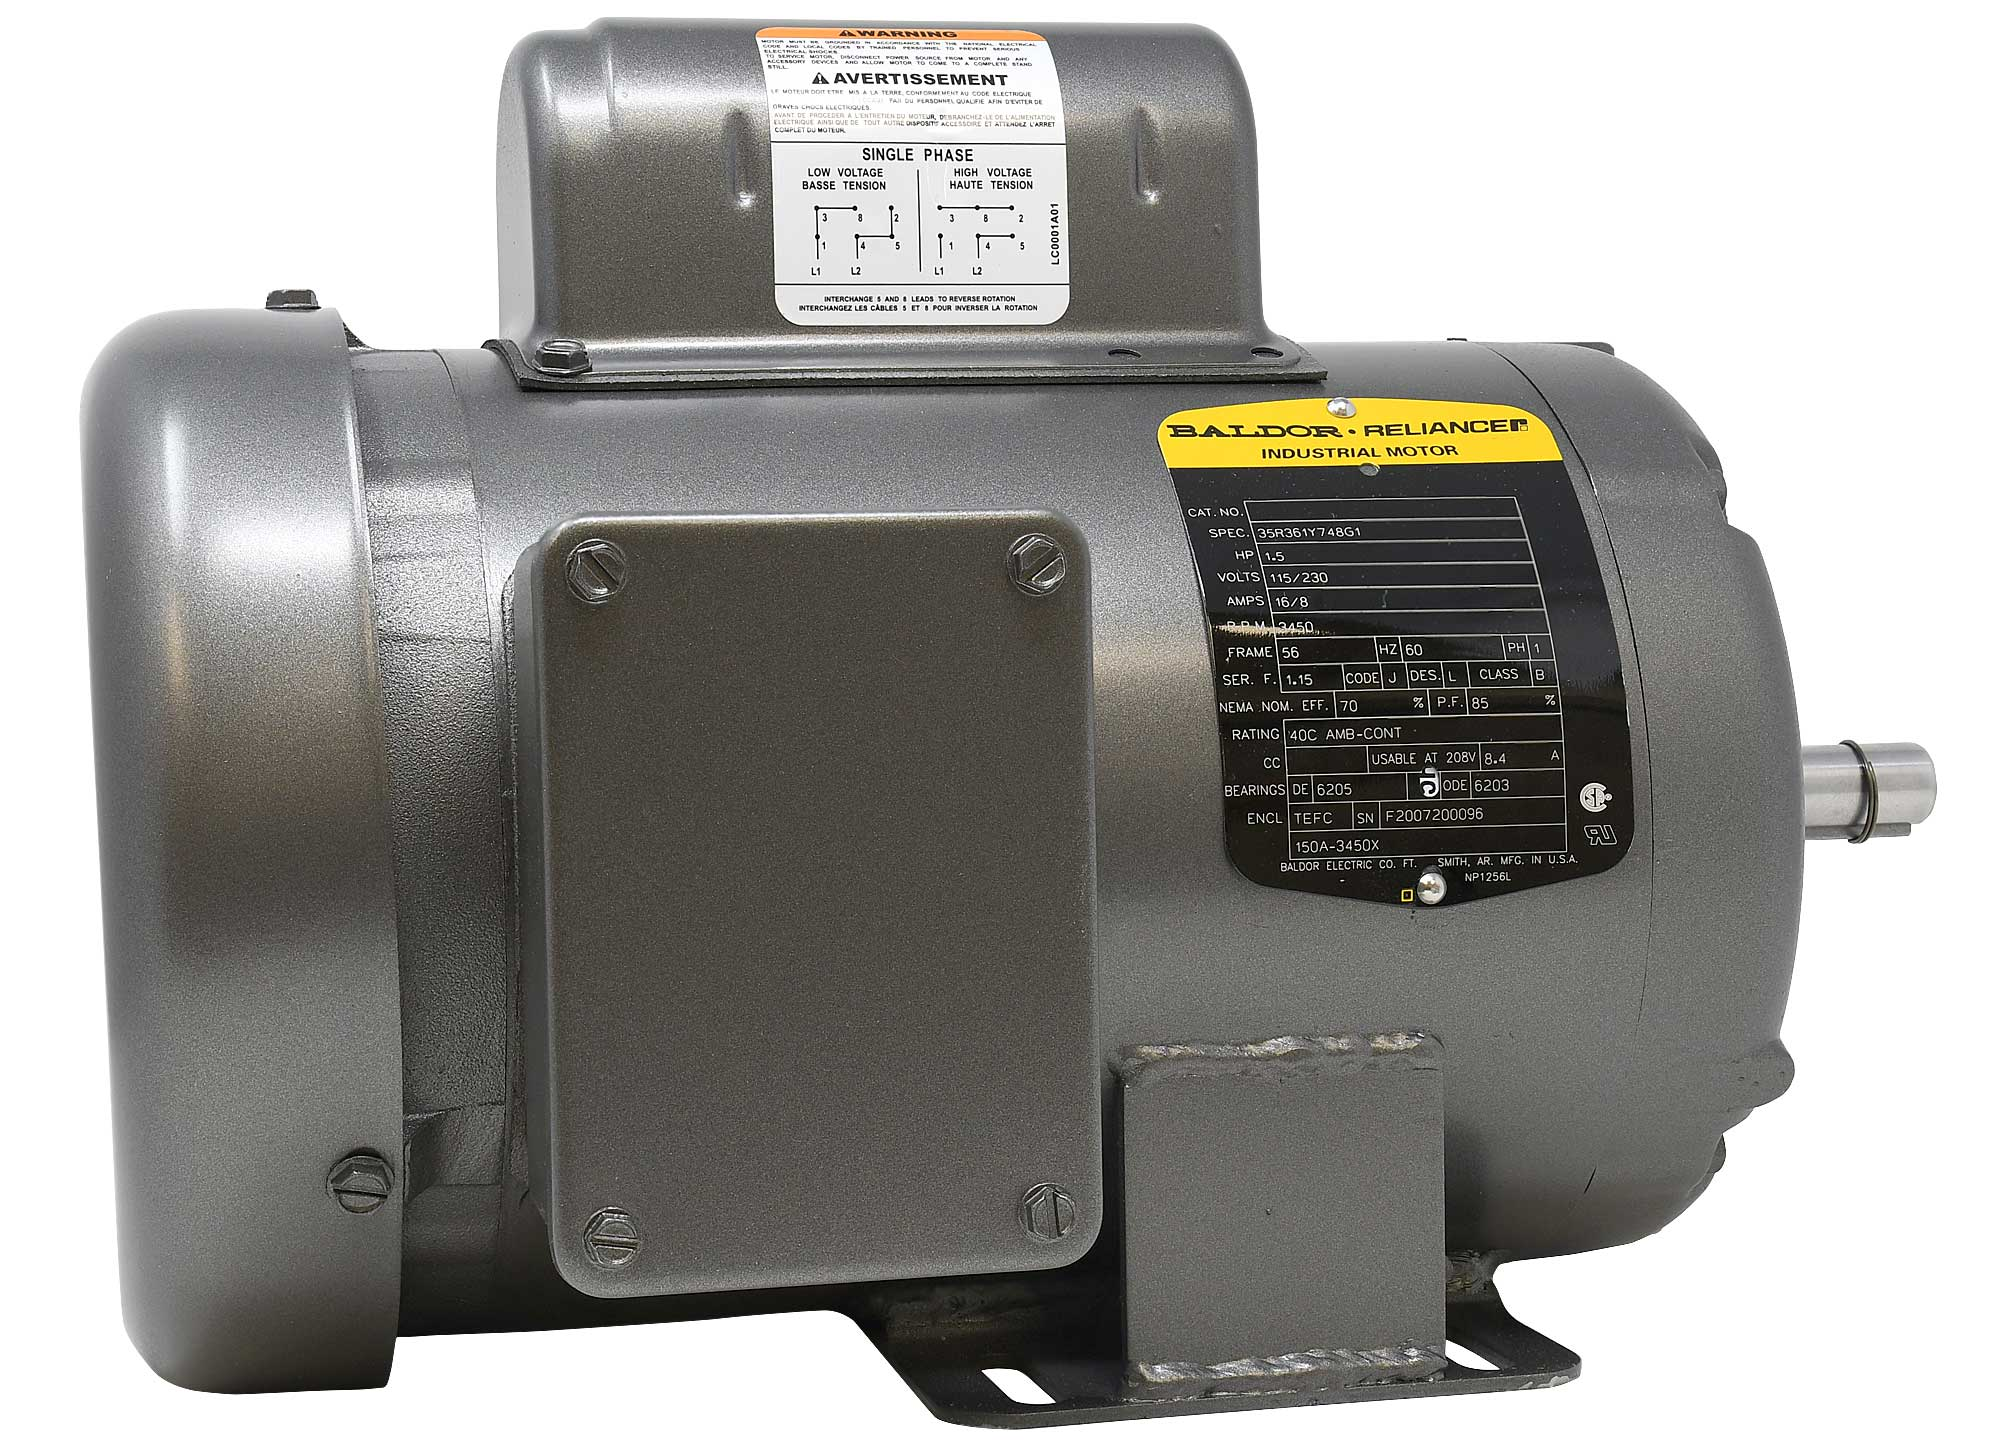 150A-3450X motor for the VibraKing 25 & 45